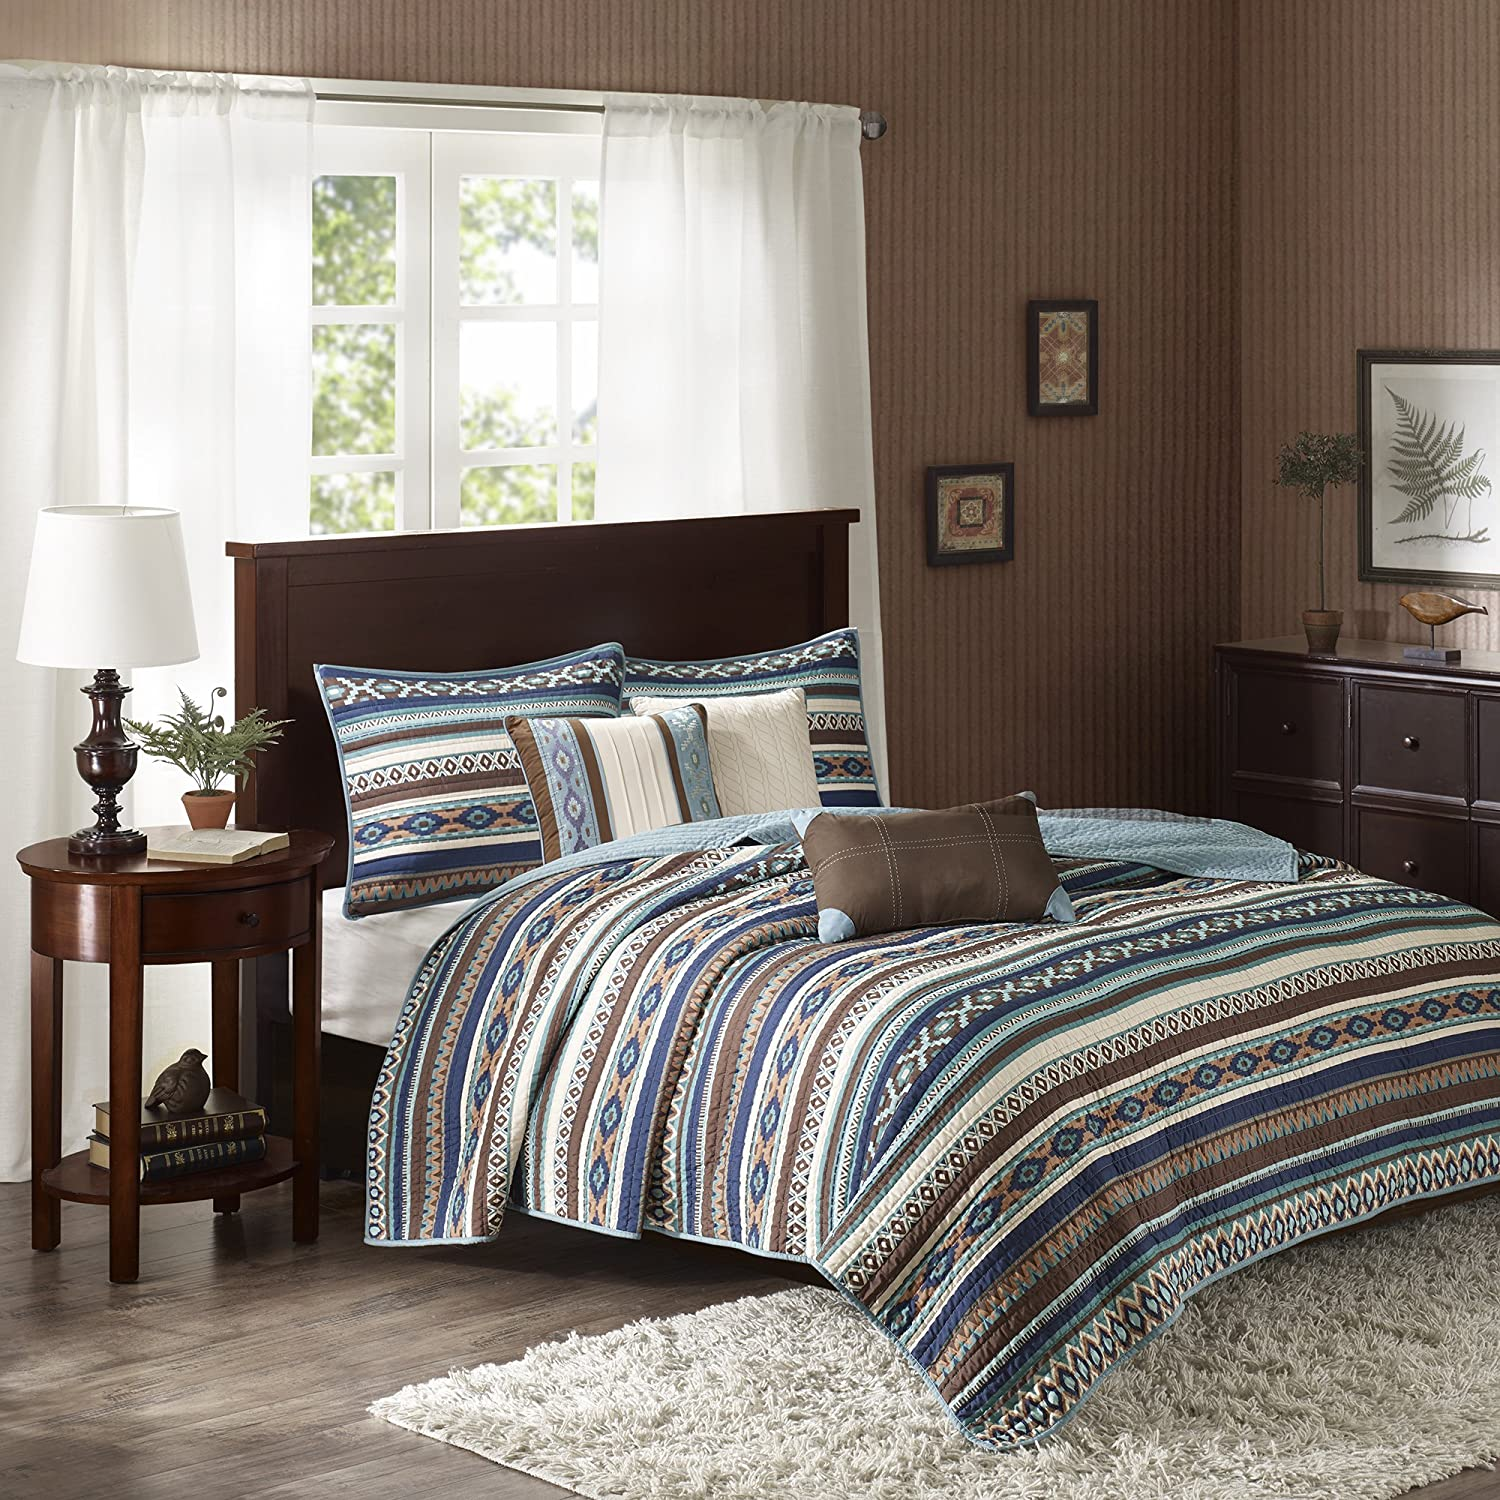 Madison Park Malone Full/Queen Size Quilt Bedding Set - Blue, Brown, Southwestern Pattern, Fair Isle – 6 Piece Bedding Quilt Coverlets